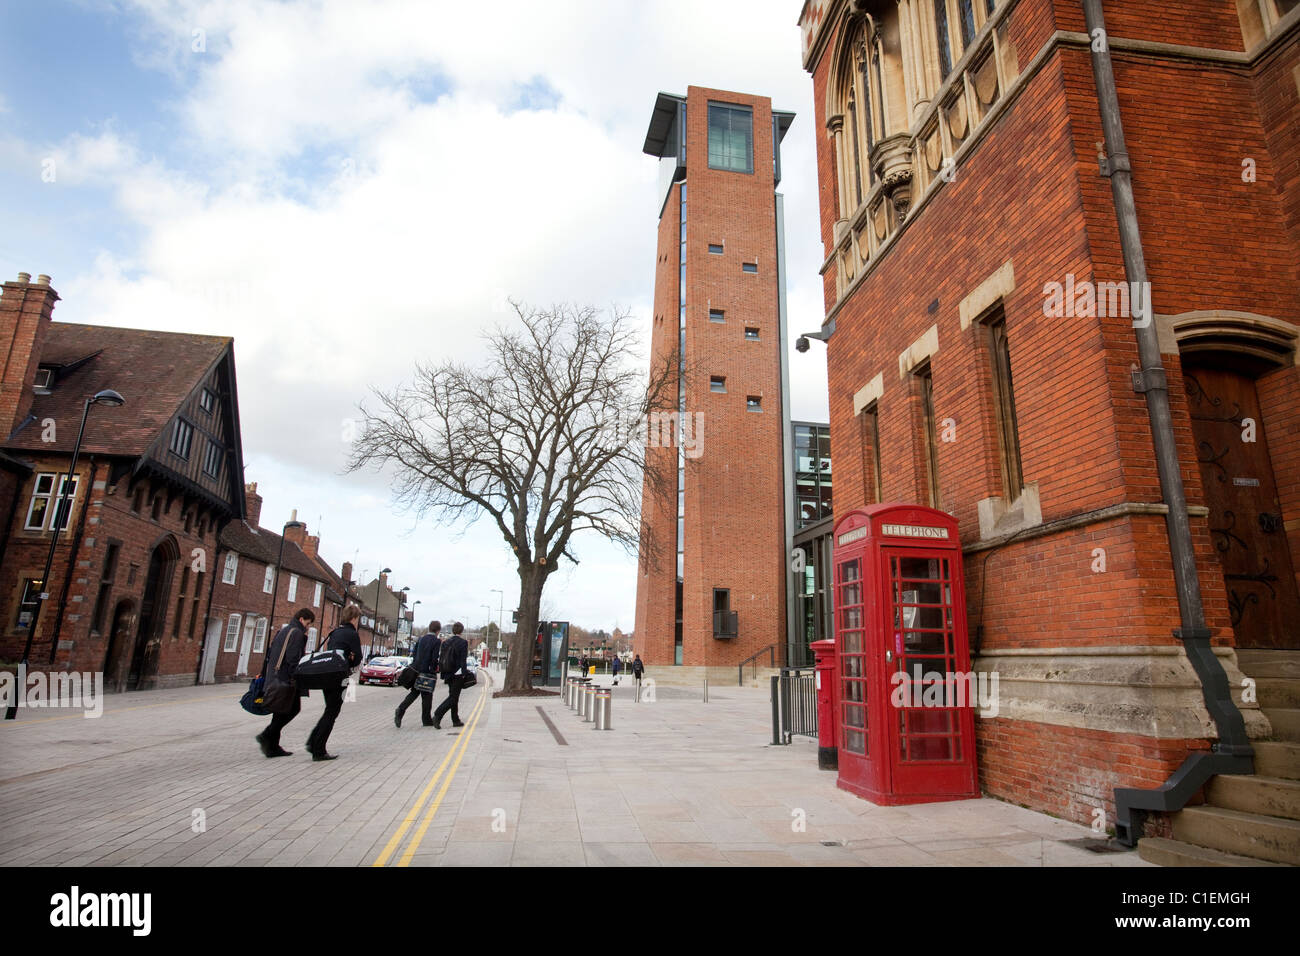 The newly renovated Royal Shakespeare Theatre in Stratford-Upon-Avon, UK. - Stock Image